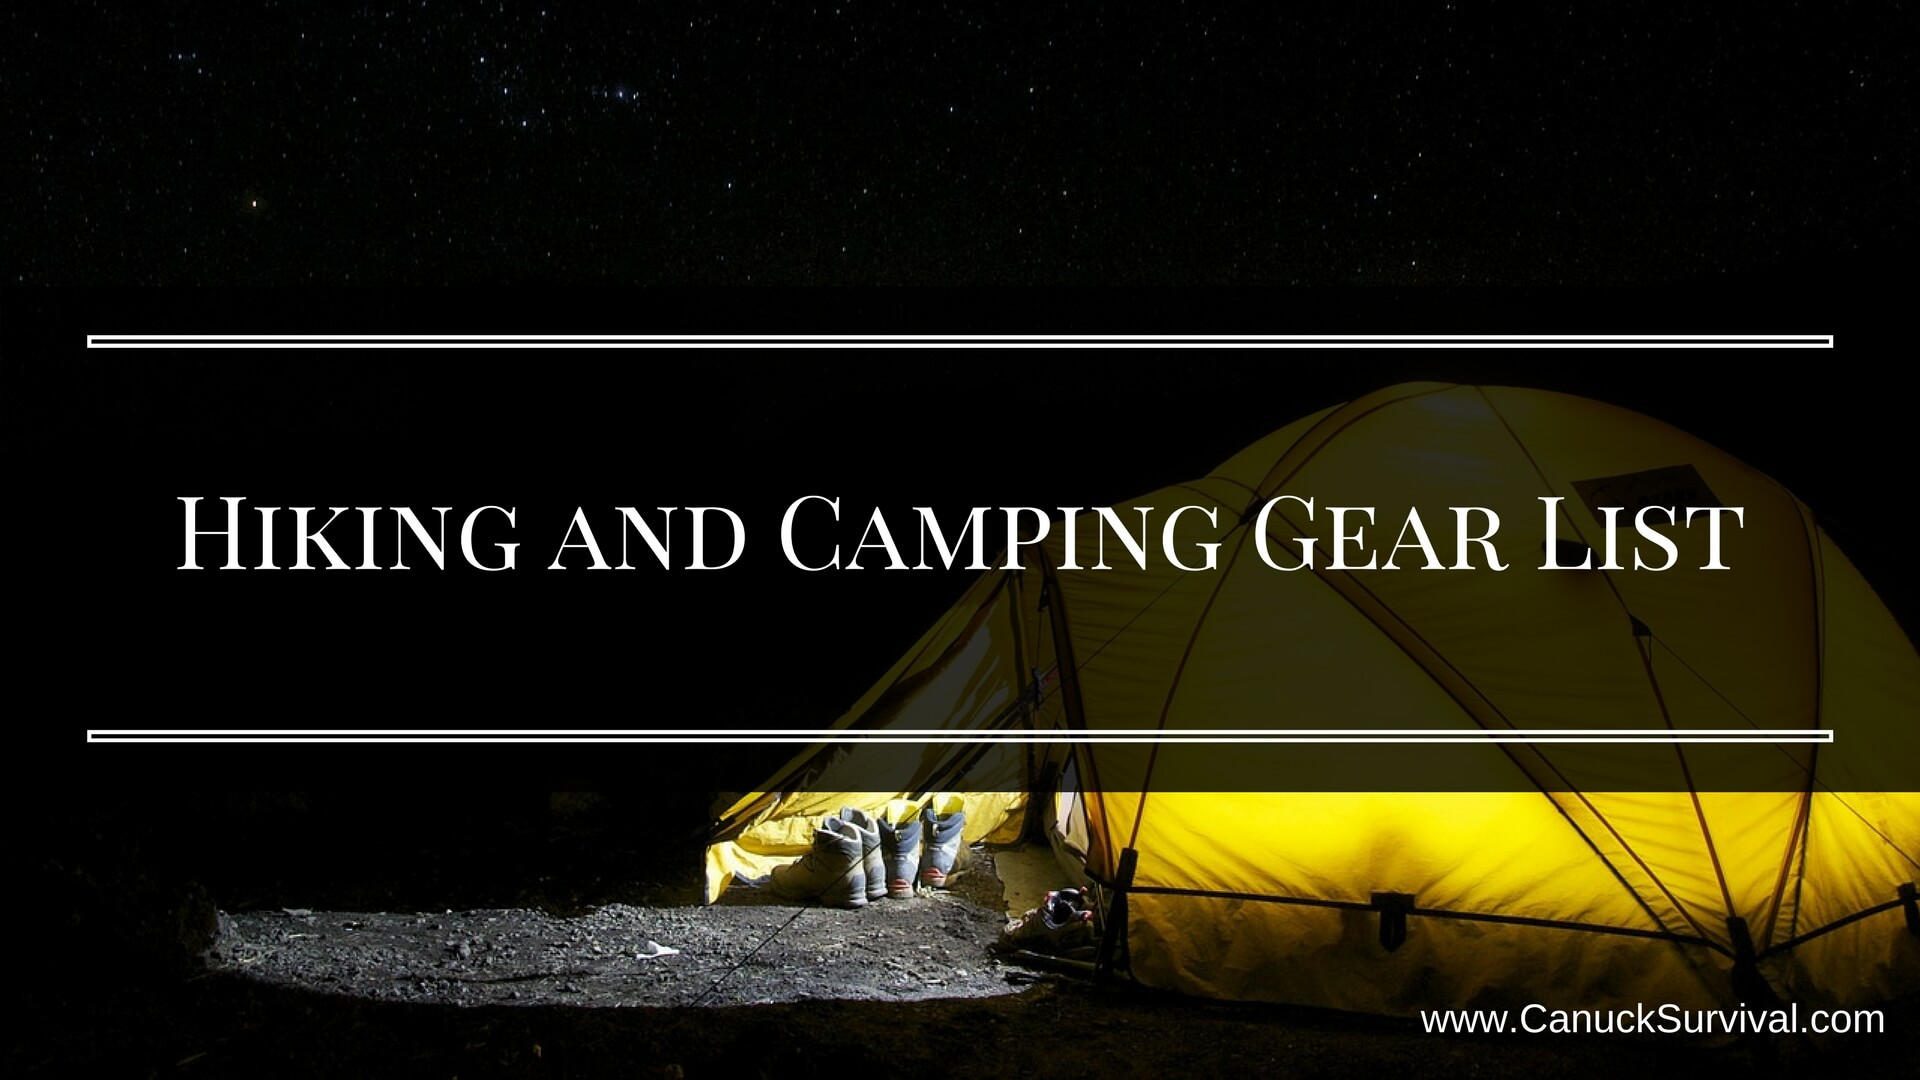 Hiking and Camping Gear List